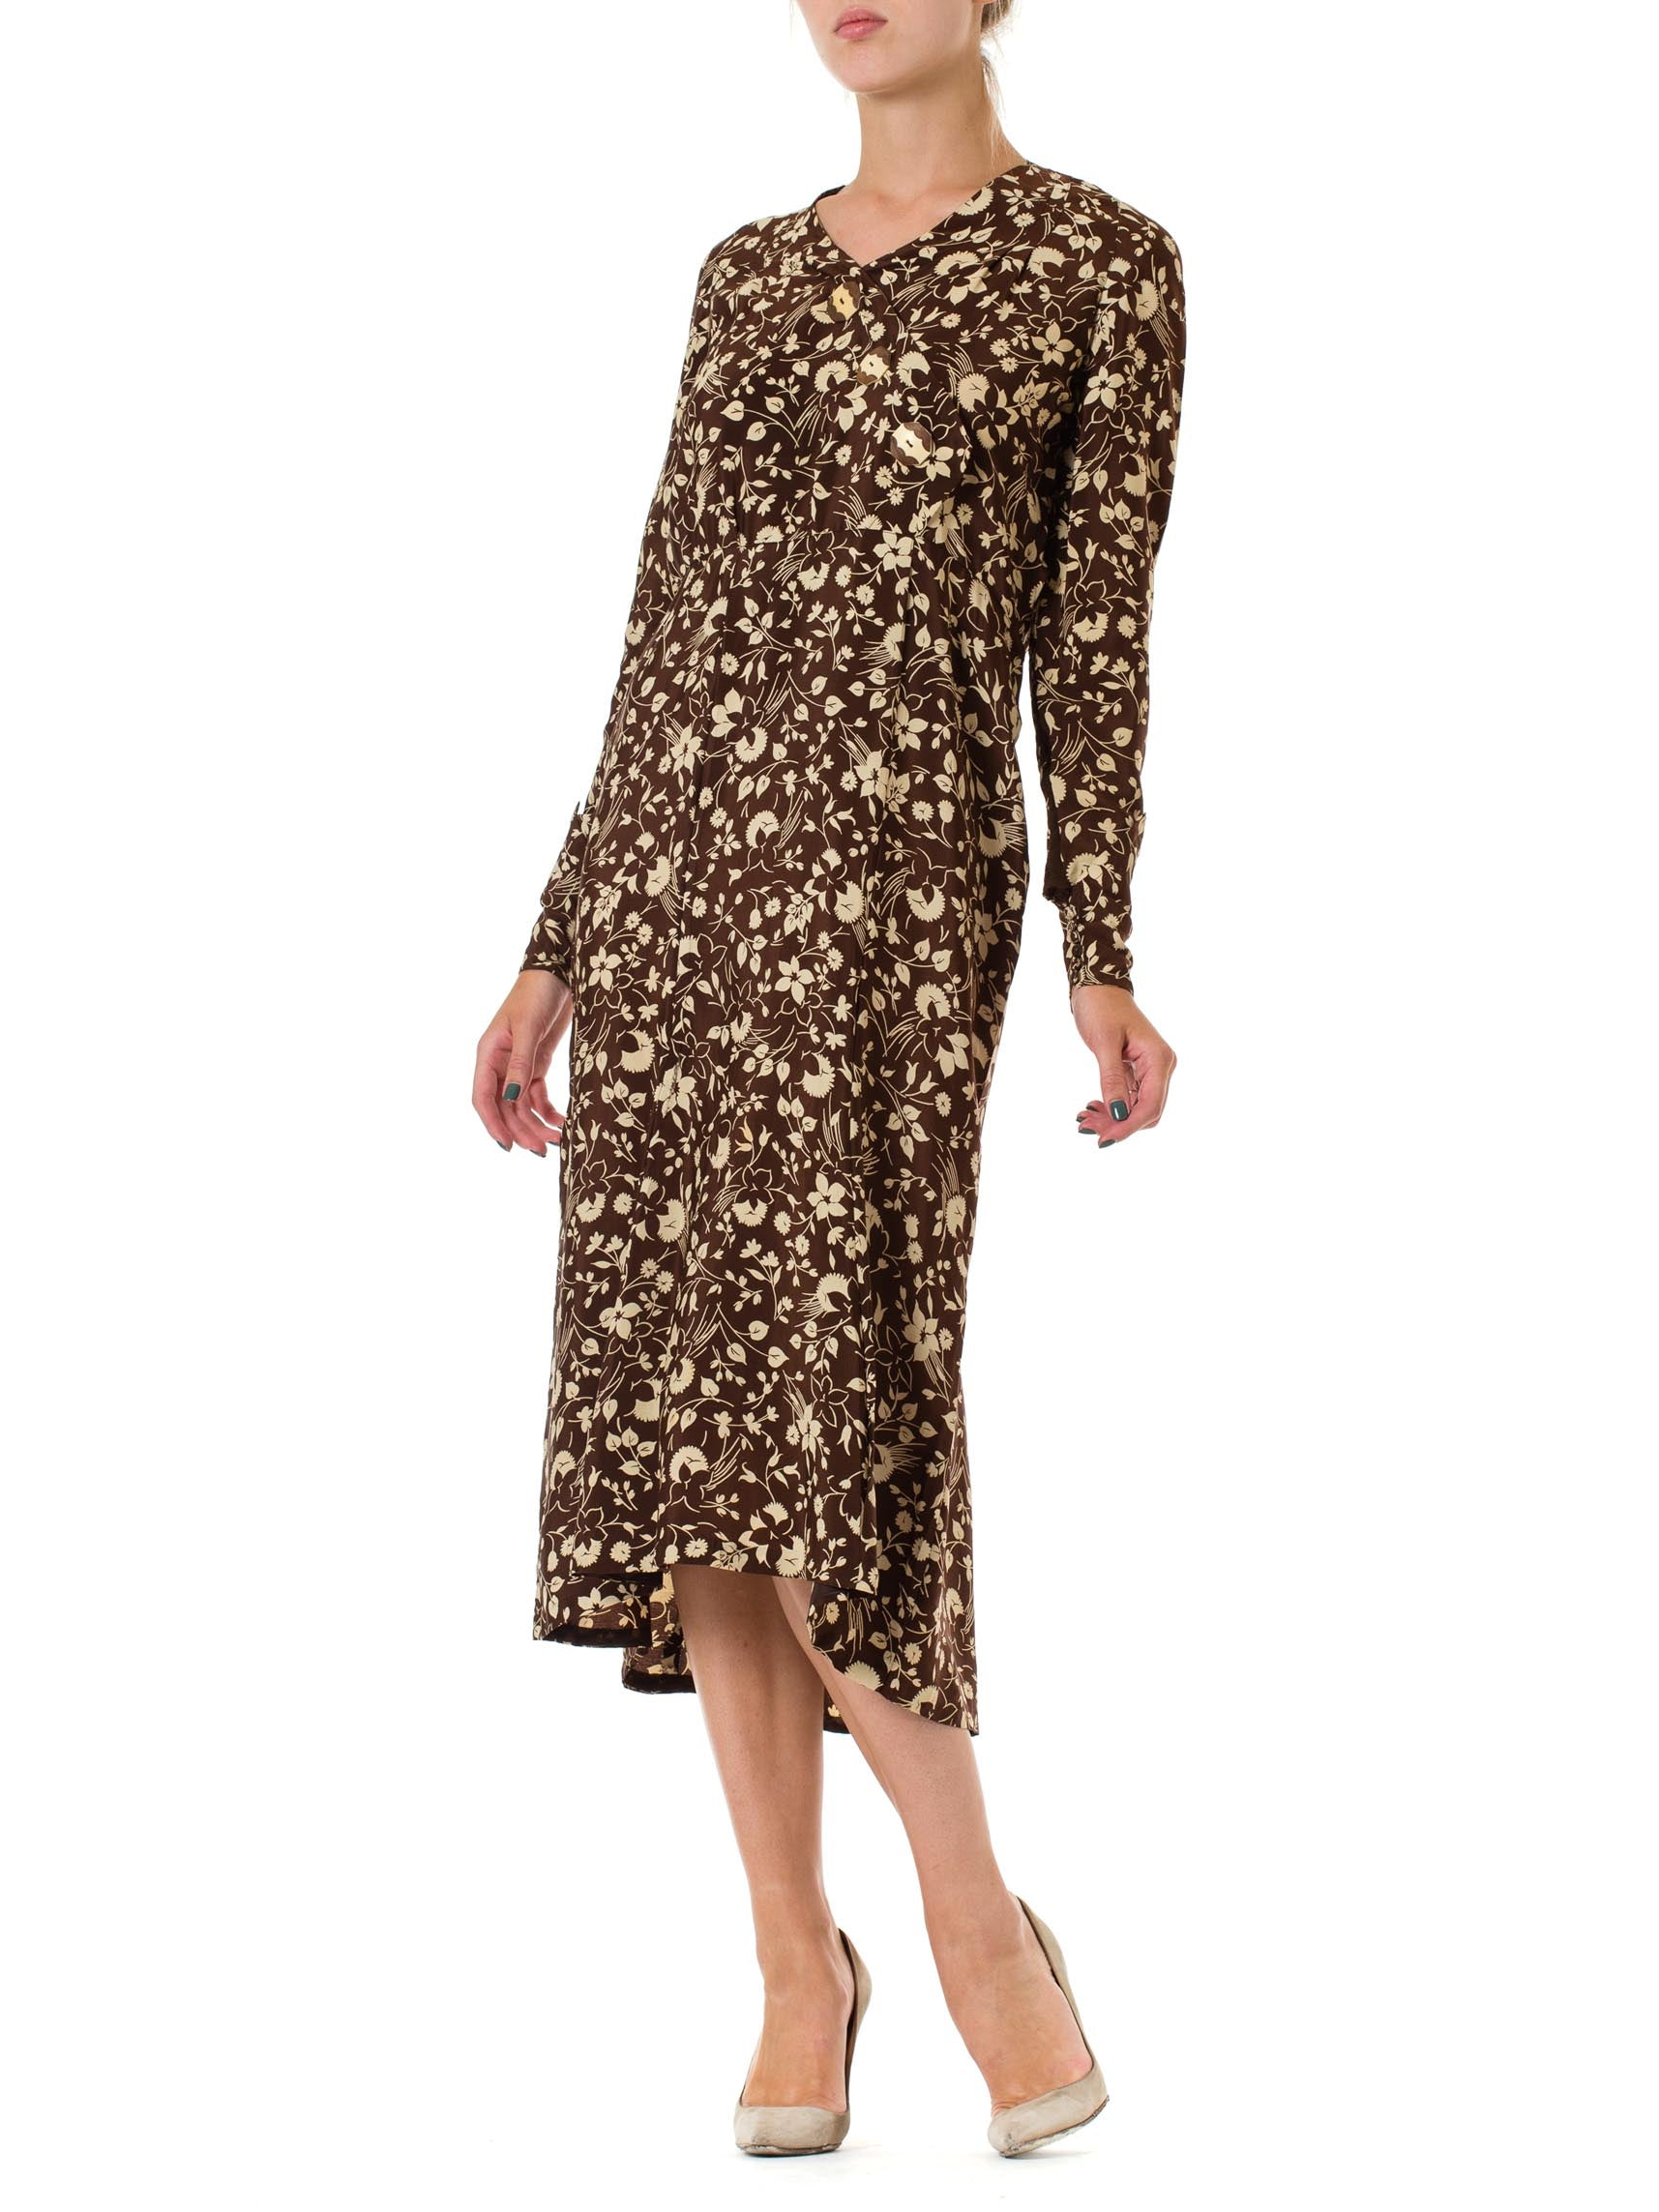 1920S Brown & Ivory Silk Crepe De Chine Two-Tone Floral Printed Long Sleeve Dress